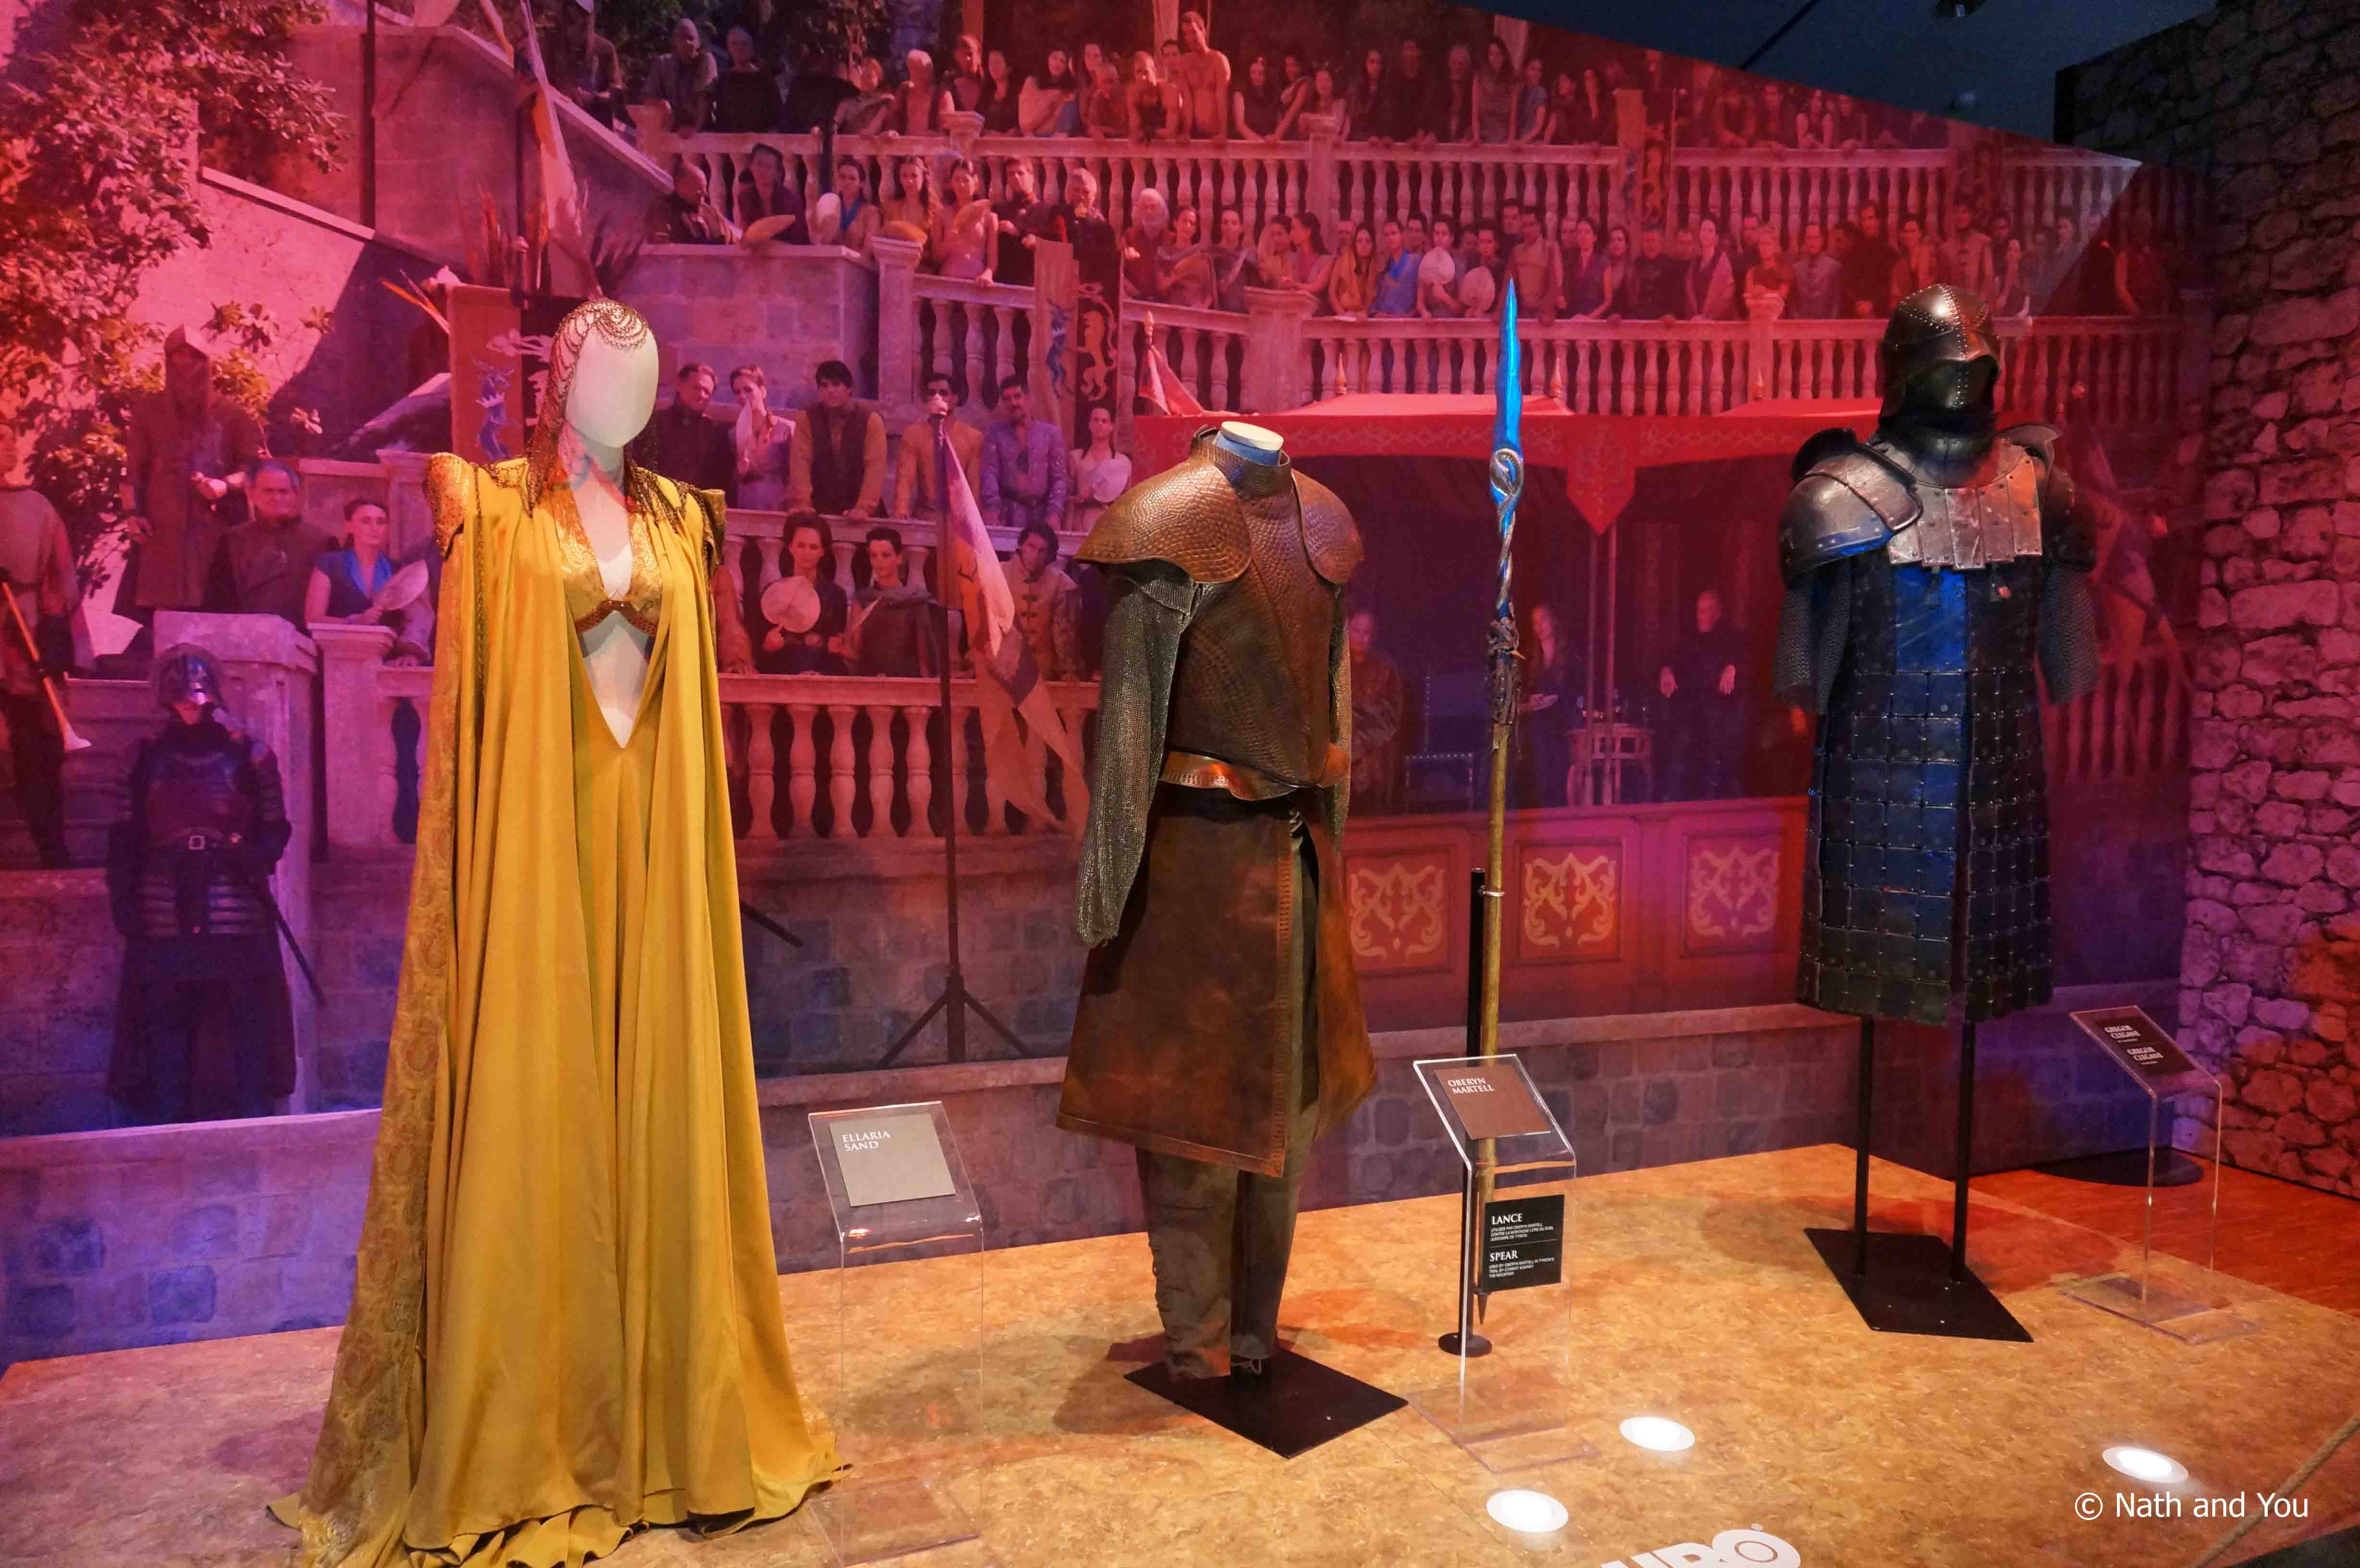 Martell-Exposition-Game-of-Thrones-Nath-and-you